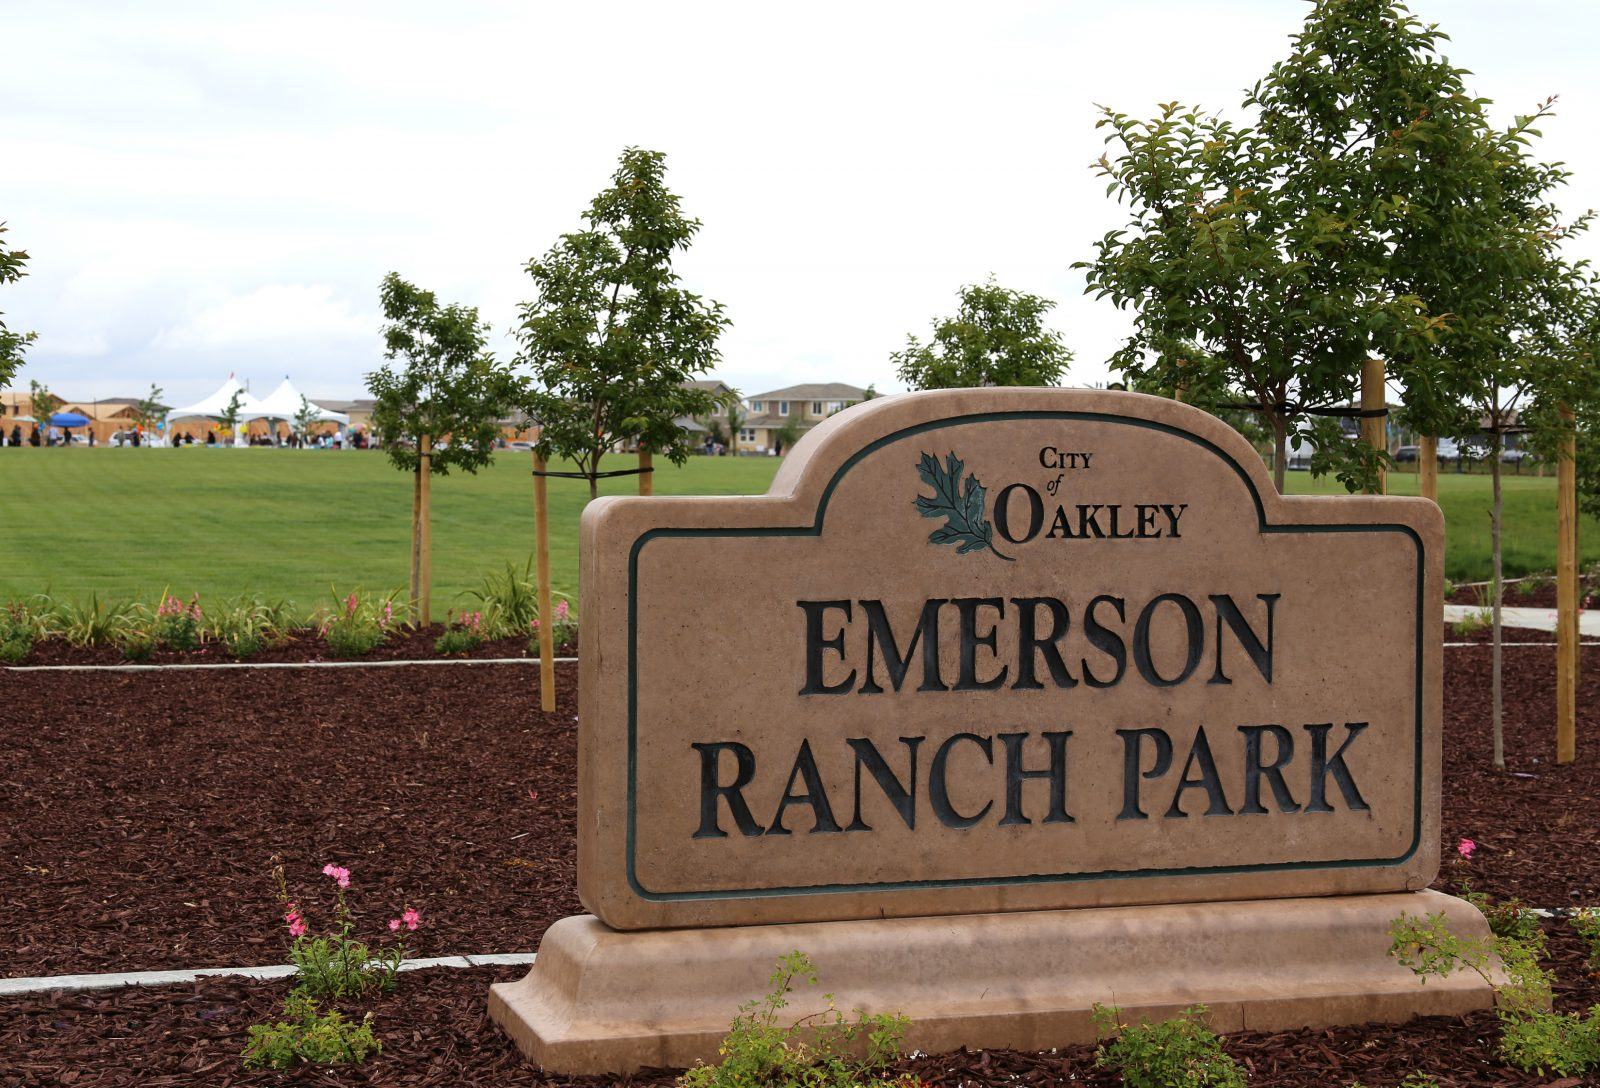 Emerson Ranch Park in Oakley, CA | Brookfield Residential